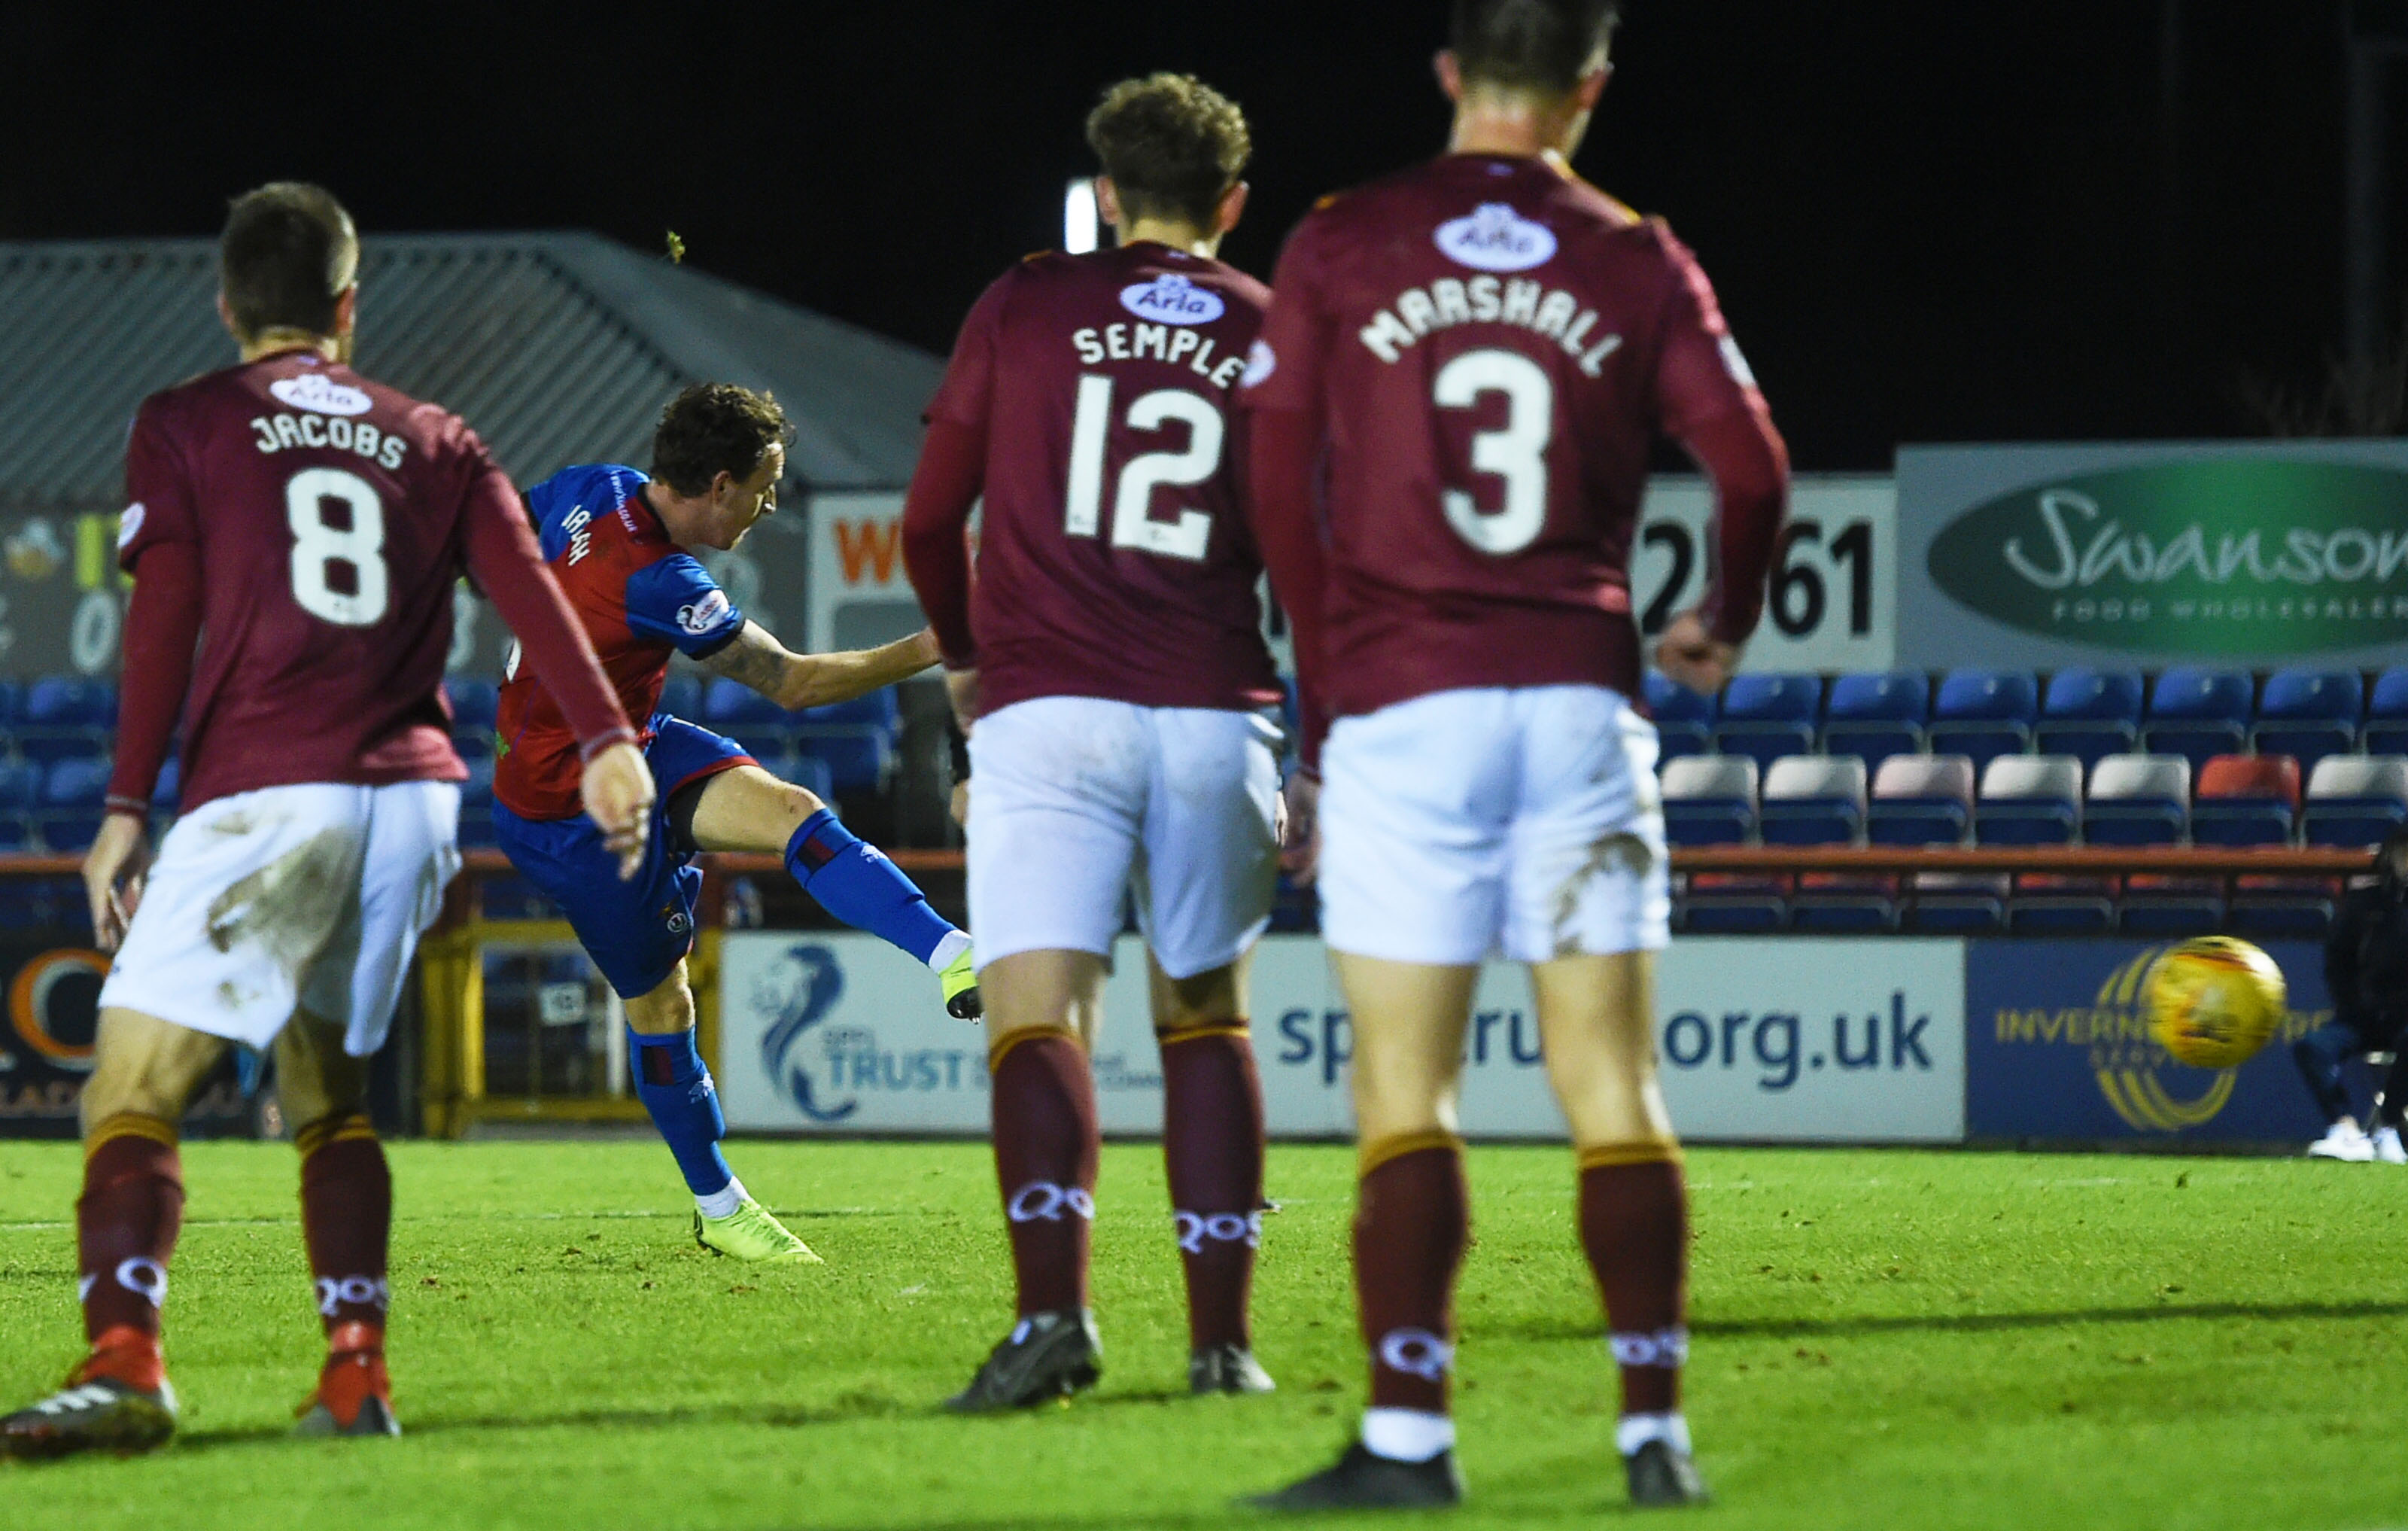 Tom Walsh opened the scoring for Caley Thistle.